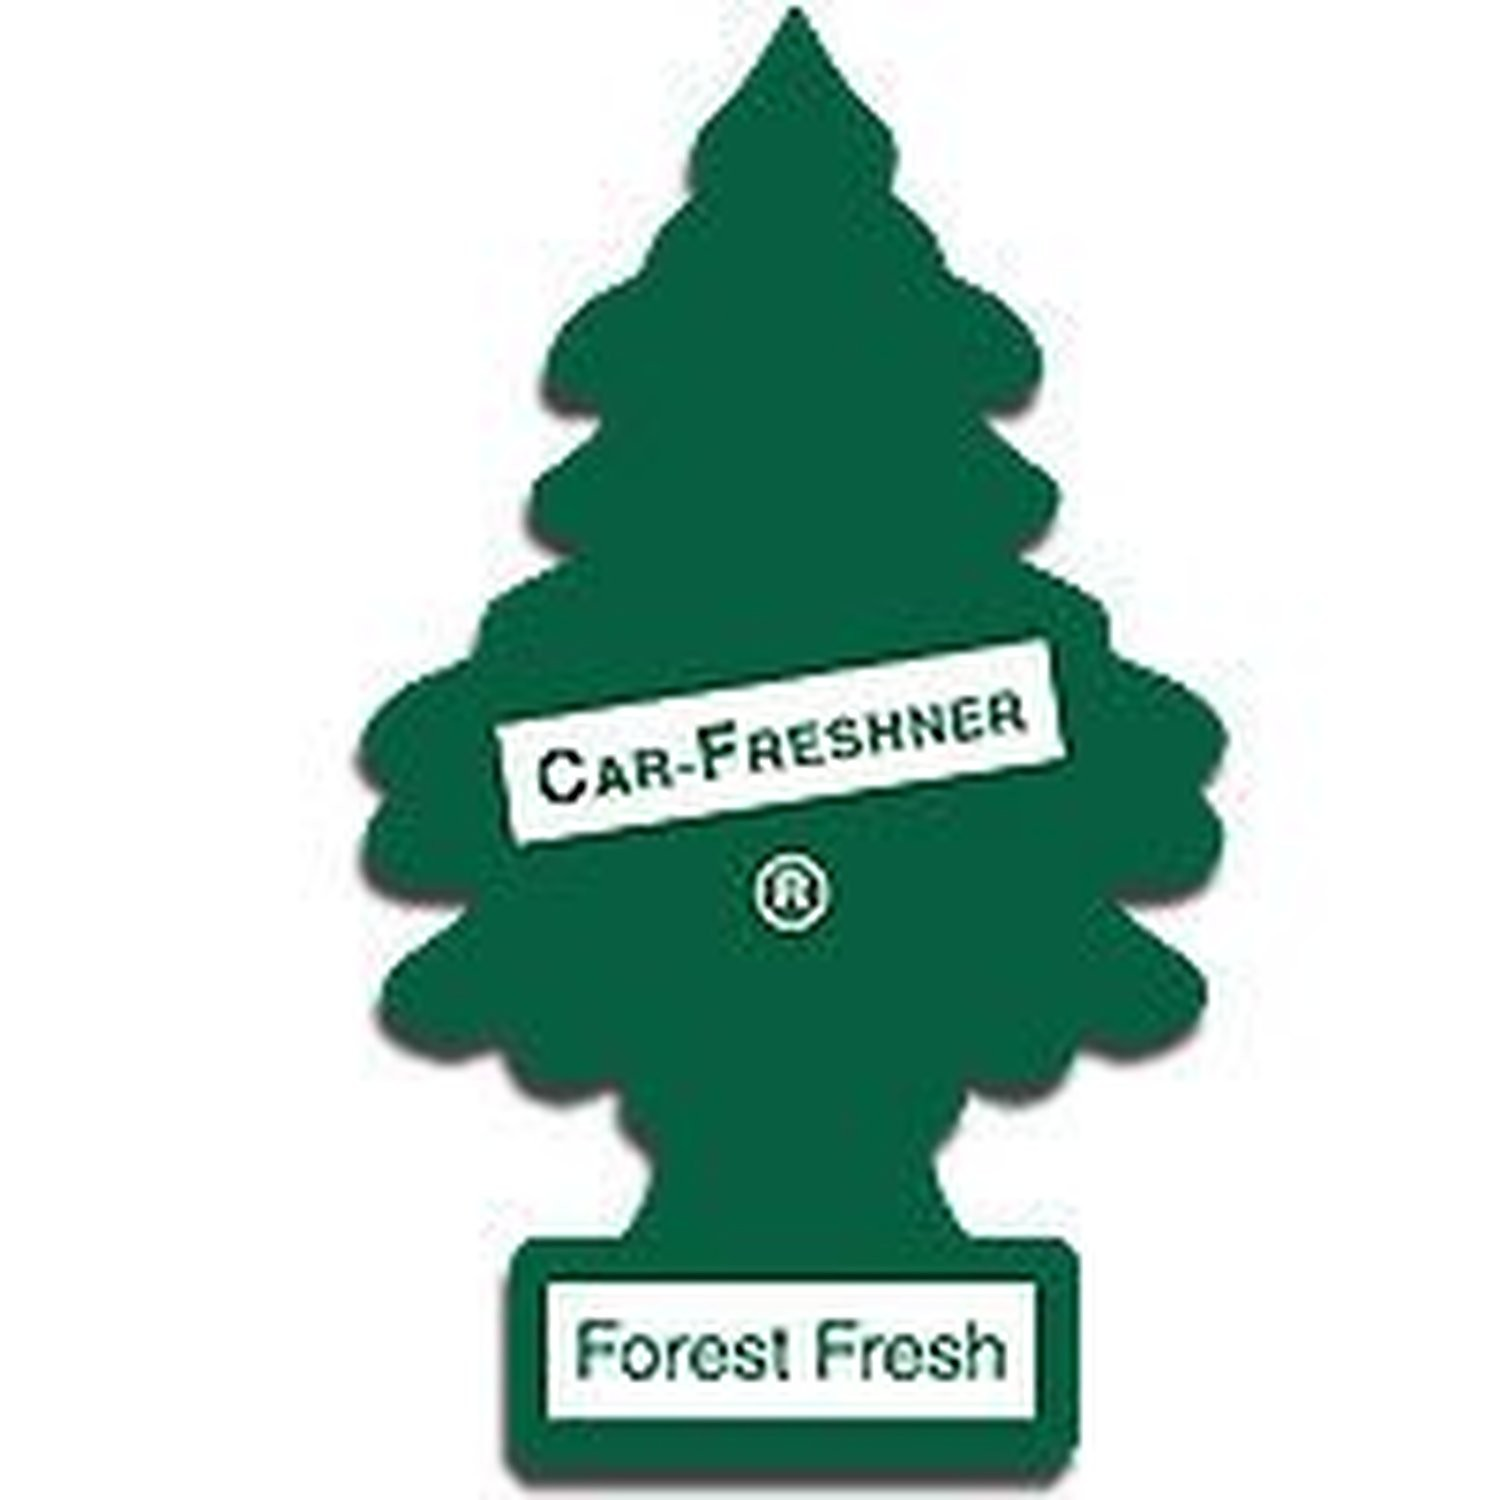 AoE Performance Magic Tree Car Air Freshener Duo Gift Pack Forest Fresh And Leather